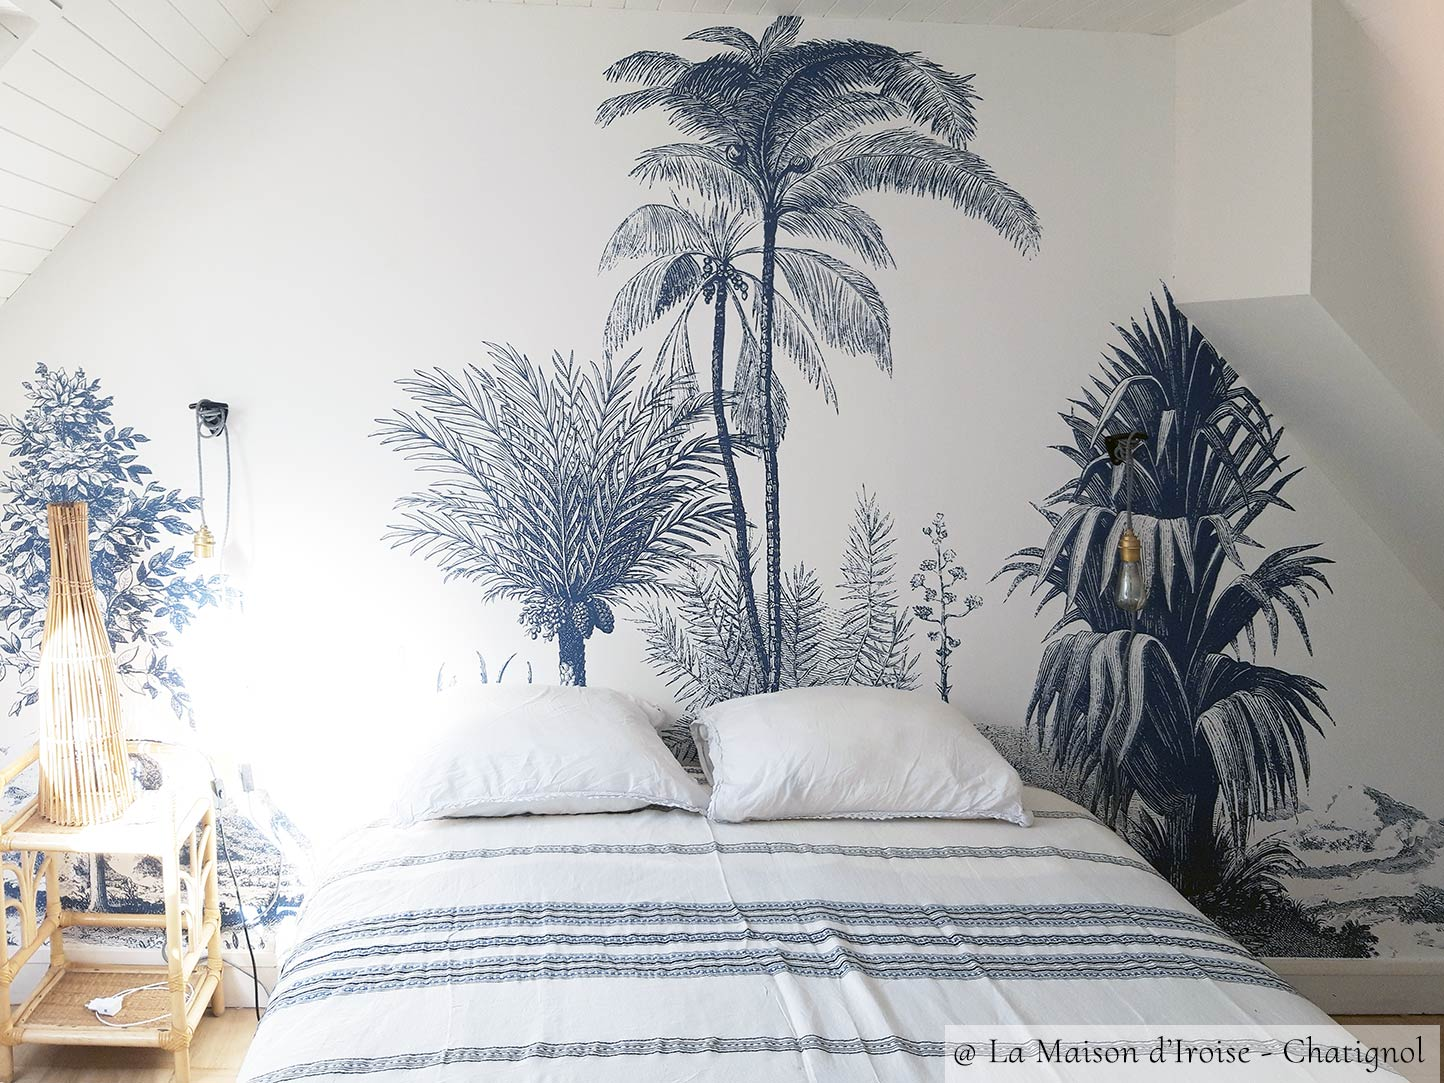 Tropical panoramic wallpaper ALOES from Les Dominotiers in a living room © La Maison d'Iroise Chatignol